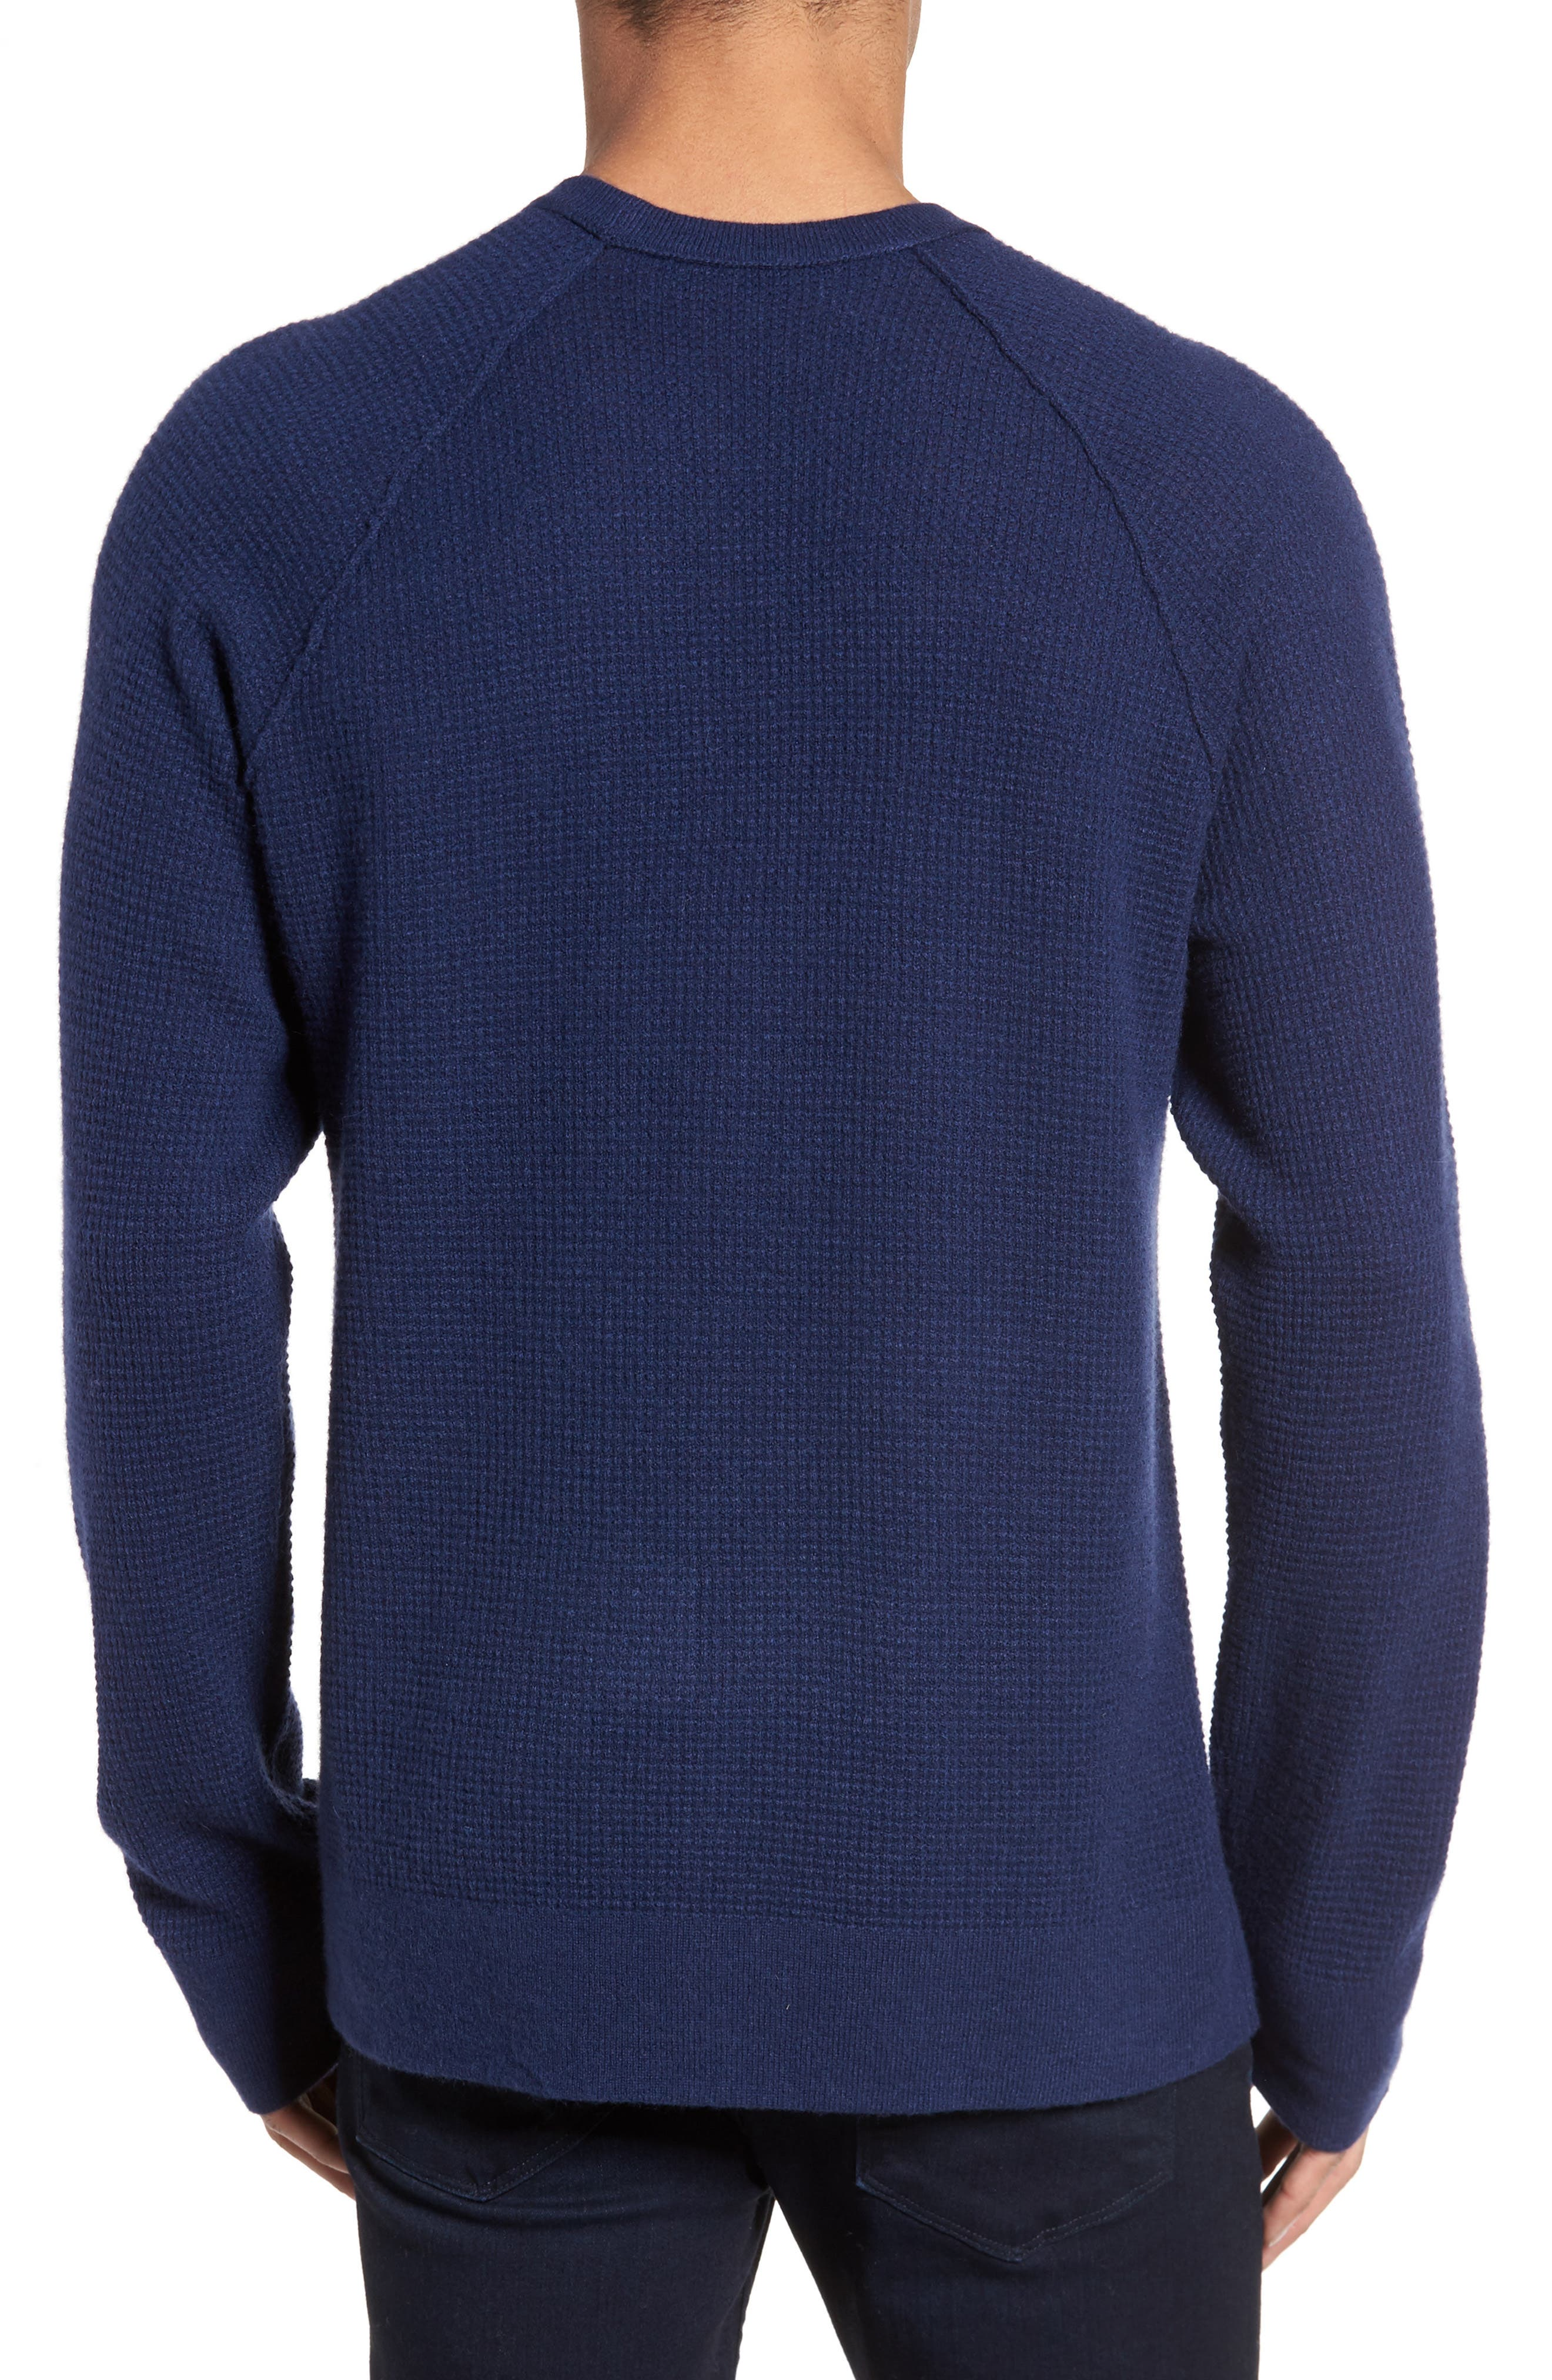 Thermal Cashmere Sweater,                             Alternate thumbnail 2, color,                             Blue